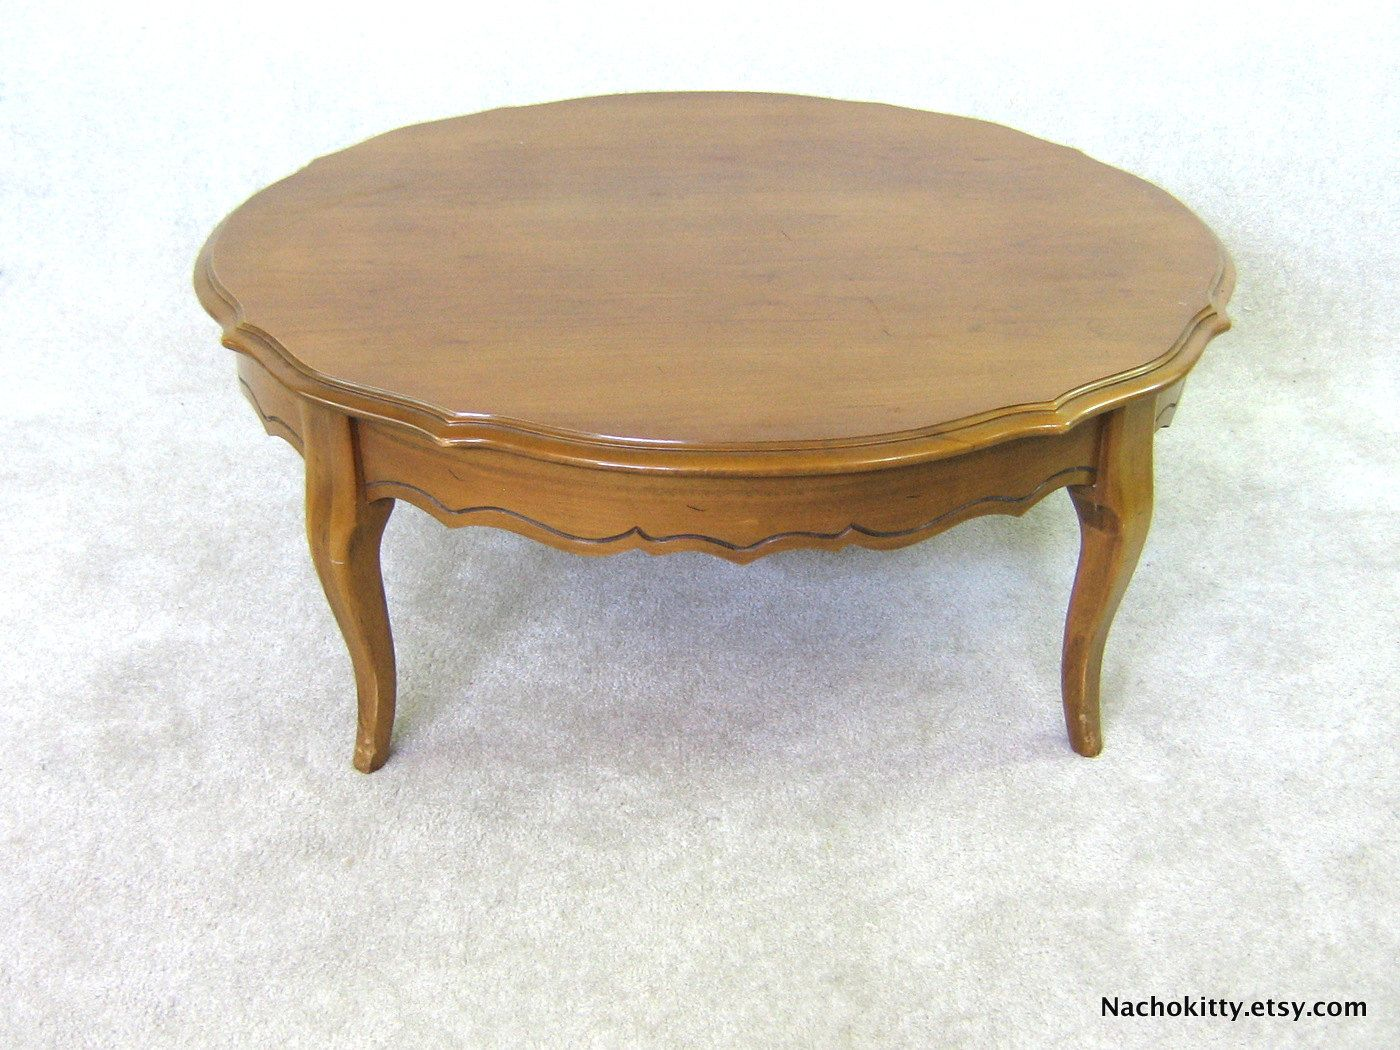 1960s Maple Coffee Table Early American Solid Wood Craftsmanship 155 00 Via Etsy Maple Furniture Coffee Table 70s Furniture [ 1050 x 1400 Pixel ]